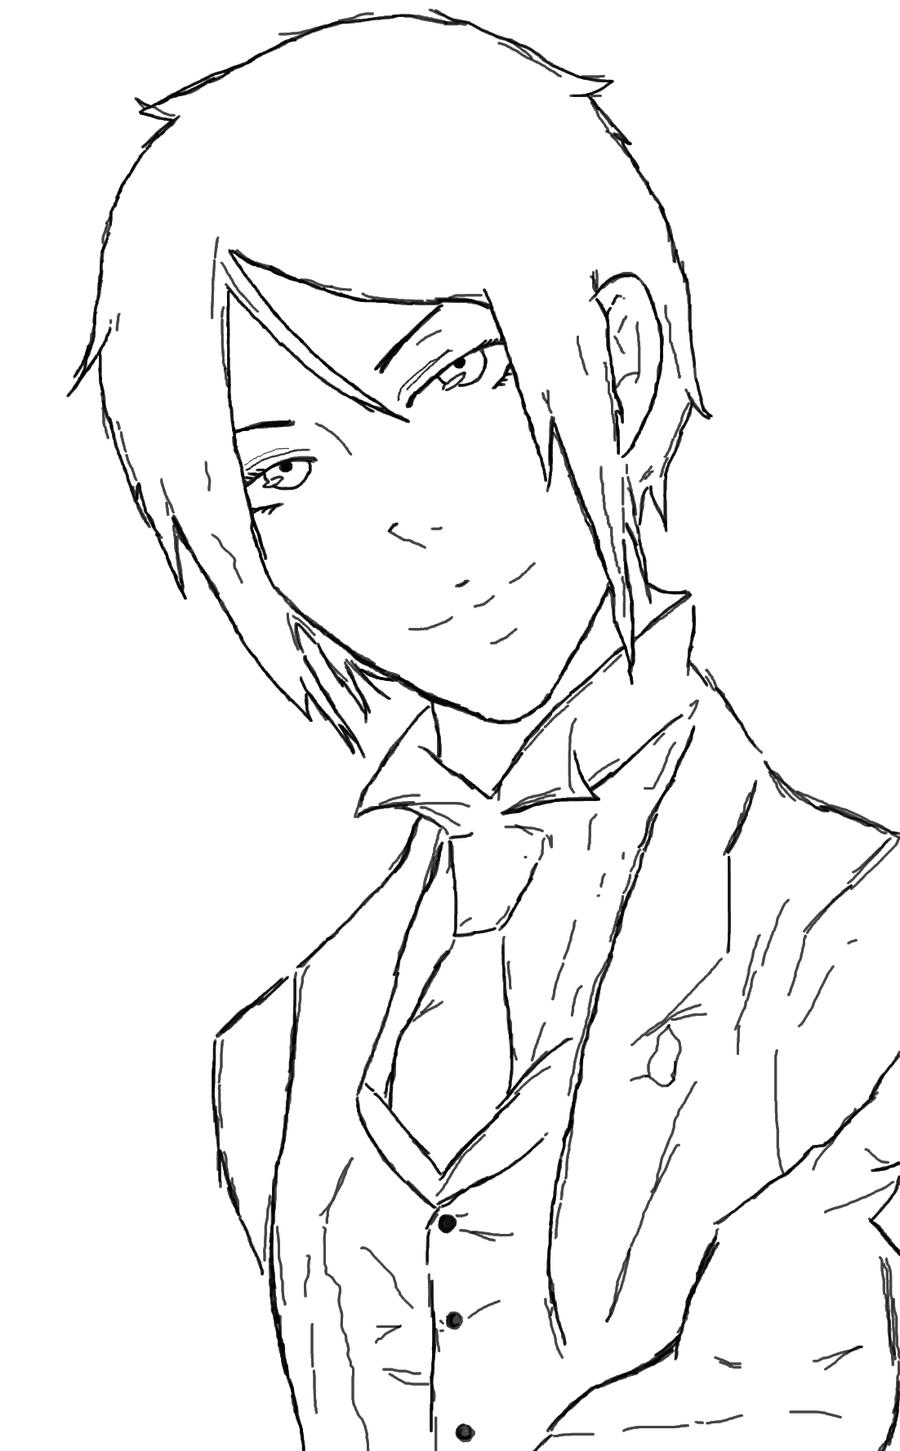 sebastian michaelis outline will add color by crimsonfange - Black Butler Chibi Coloring Pages